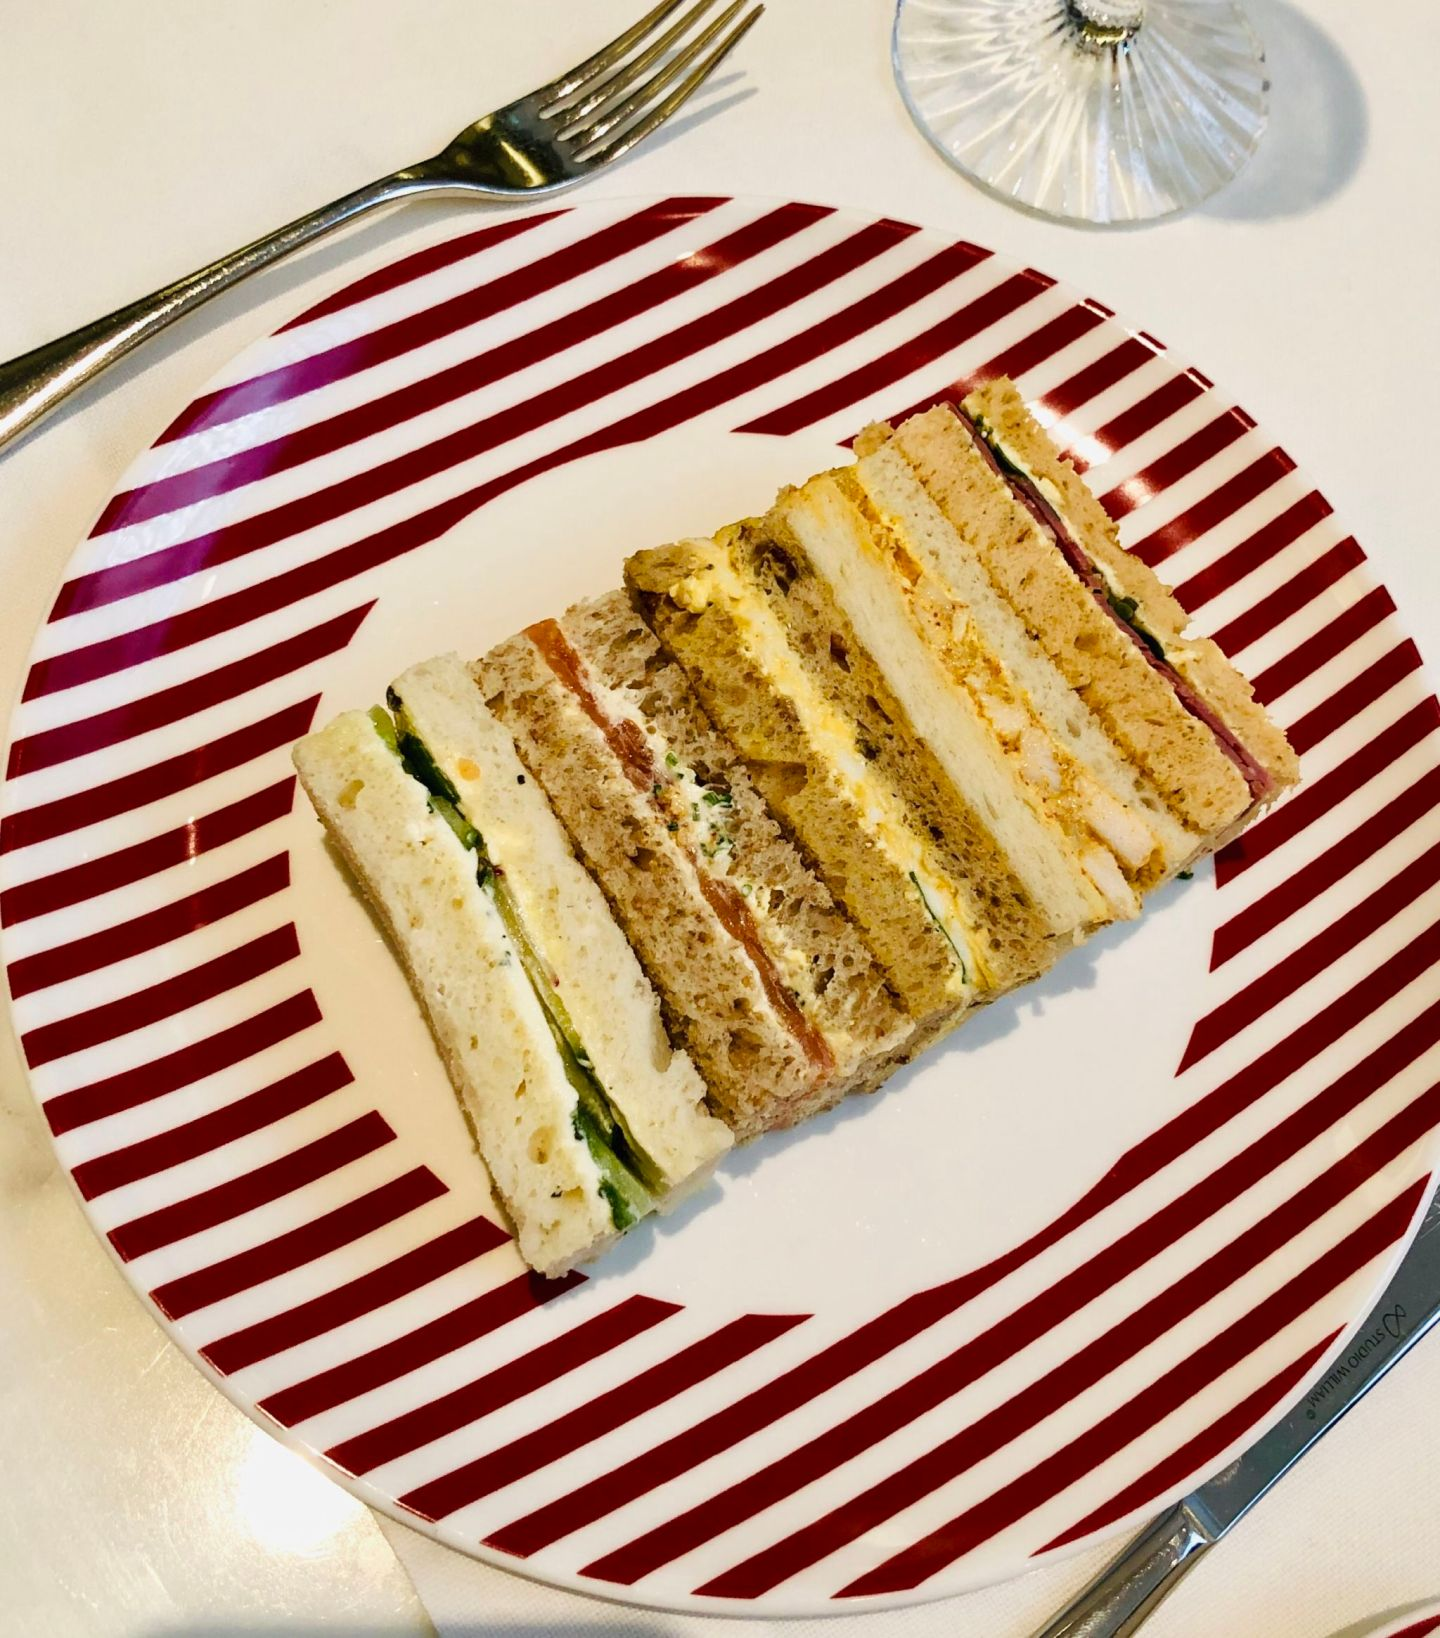 Corinthia Hotel London Afternoon tea Deals